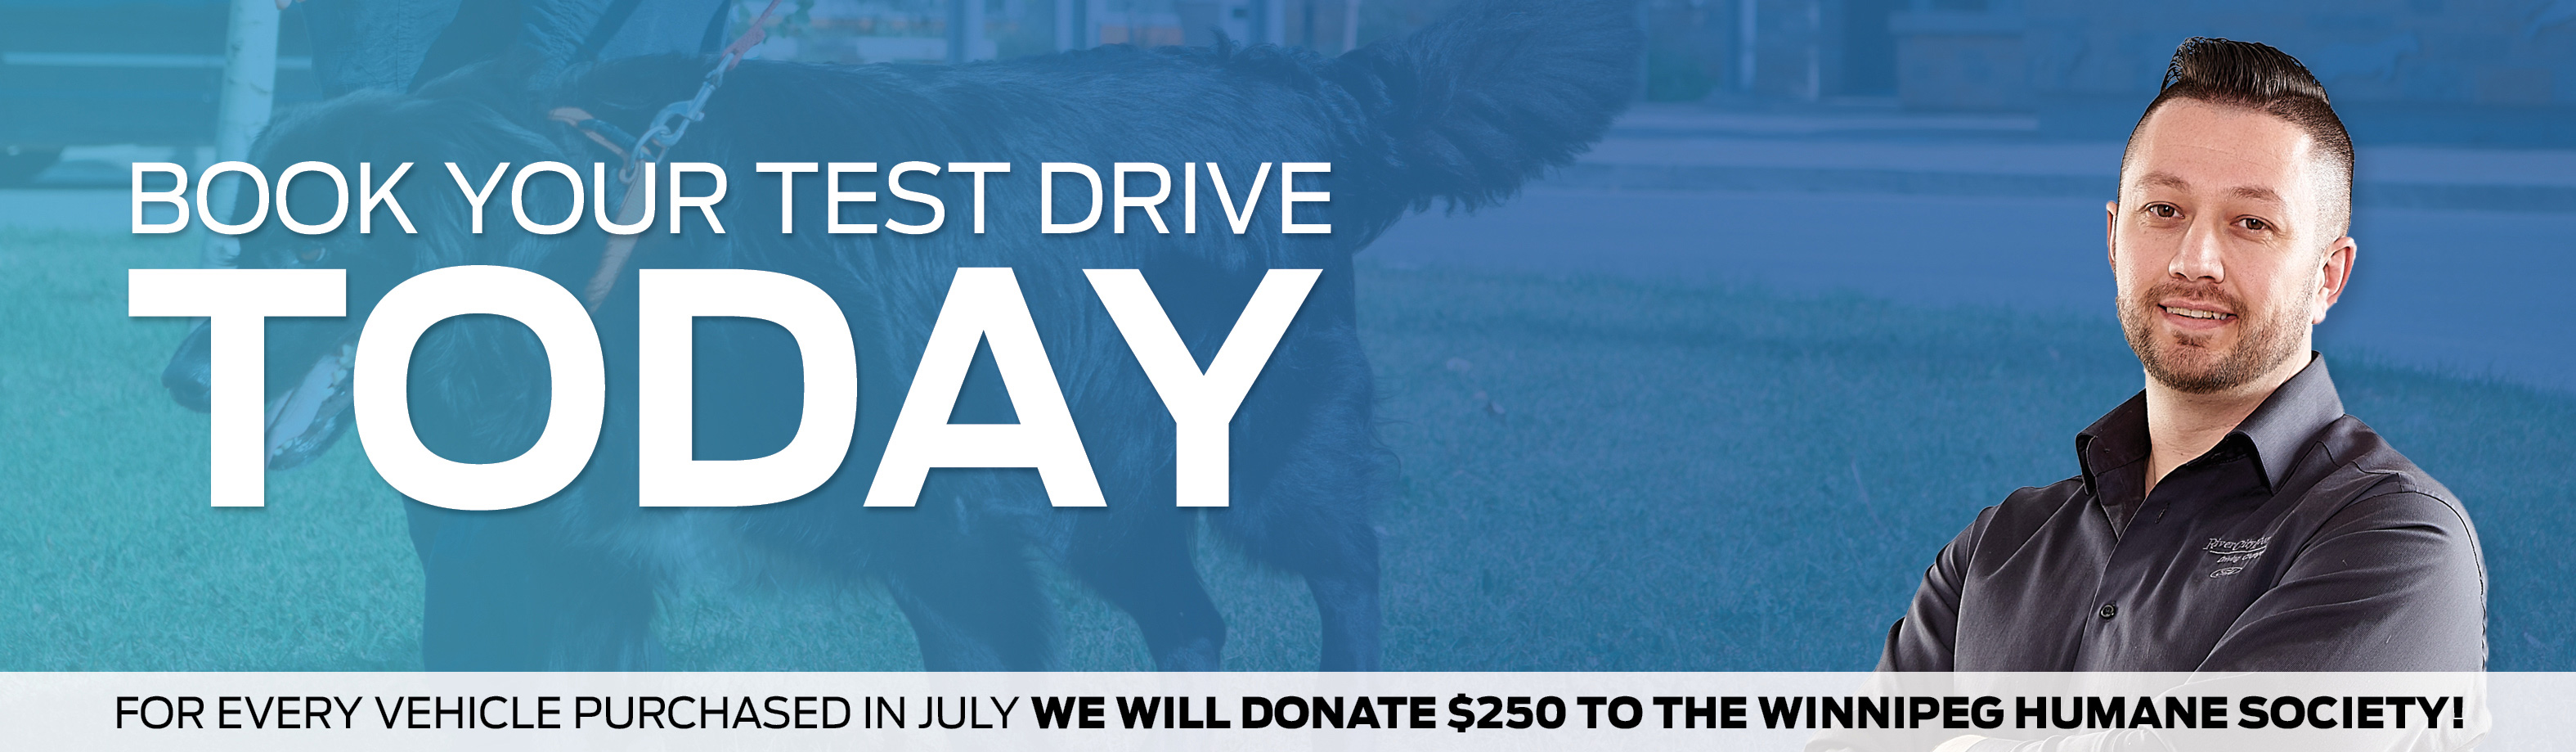 Book your test drive today @ River City Ford - $250 from every vehicle purchased will be donated to the Winnipeg Humane Society